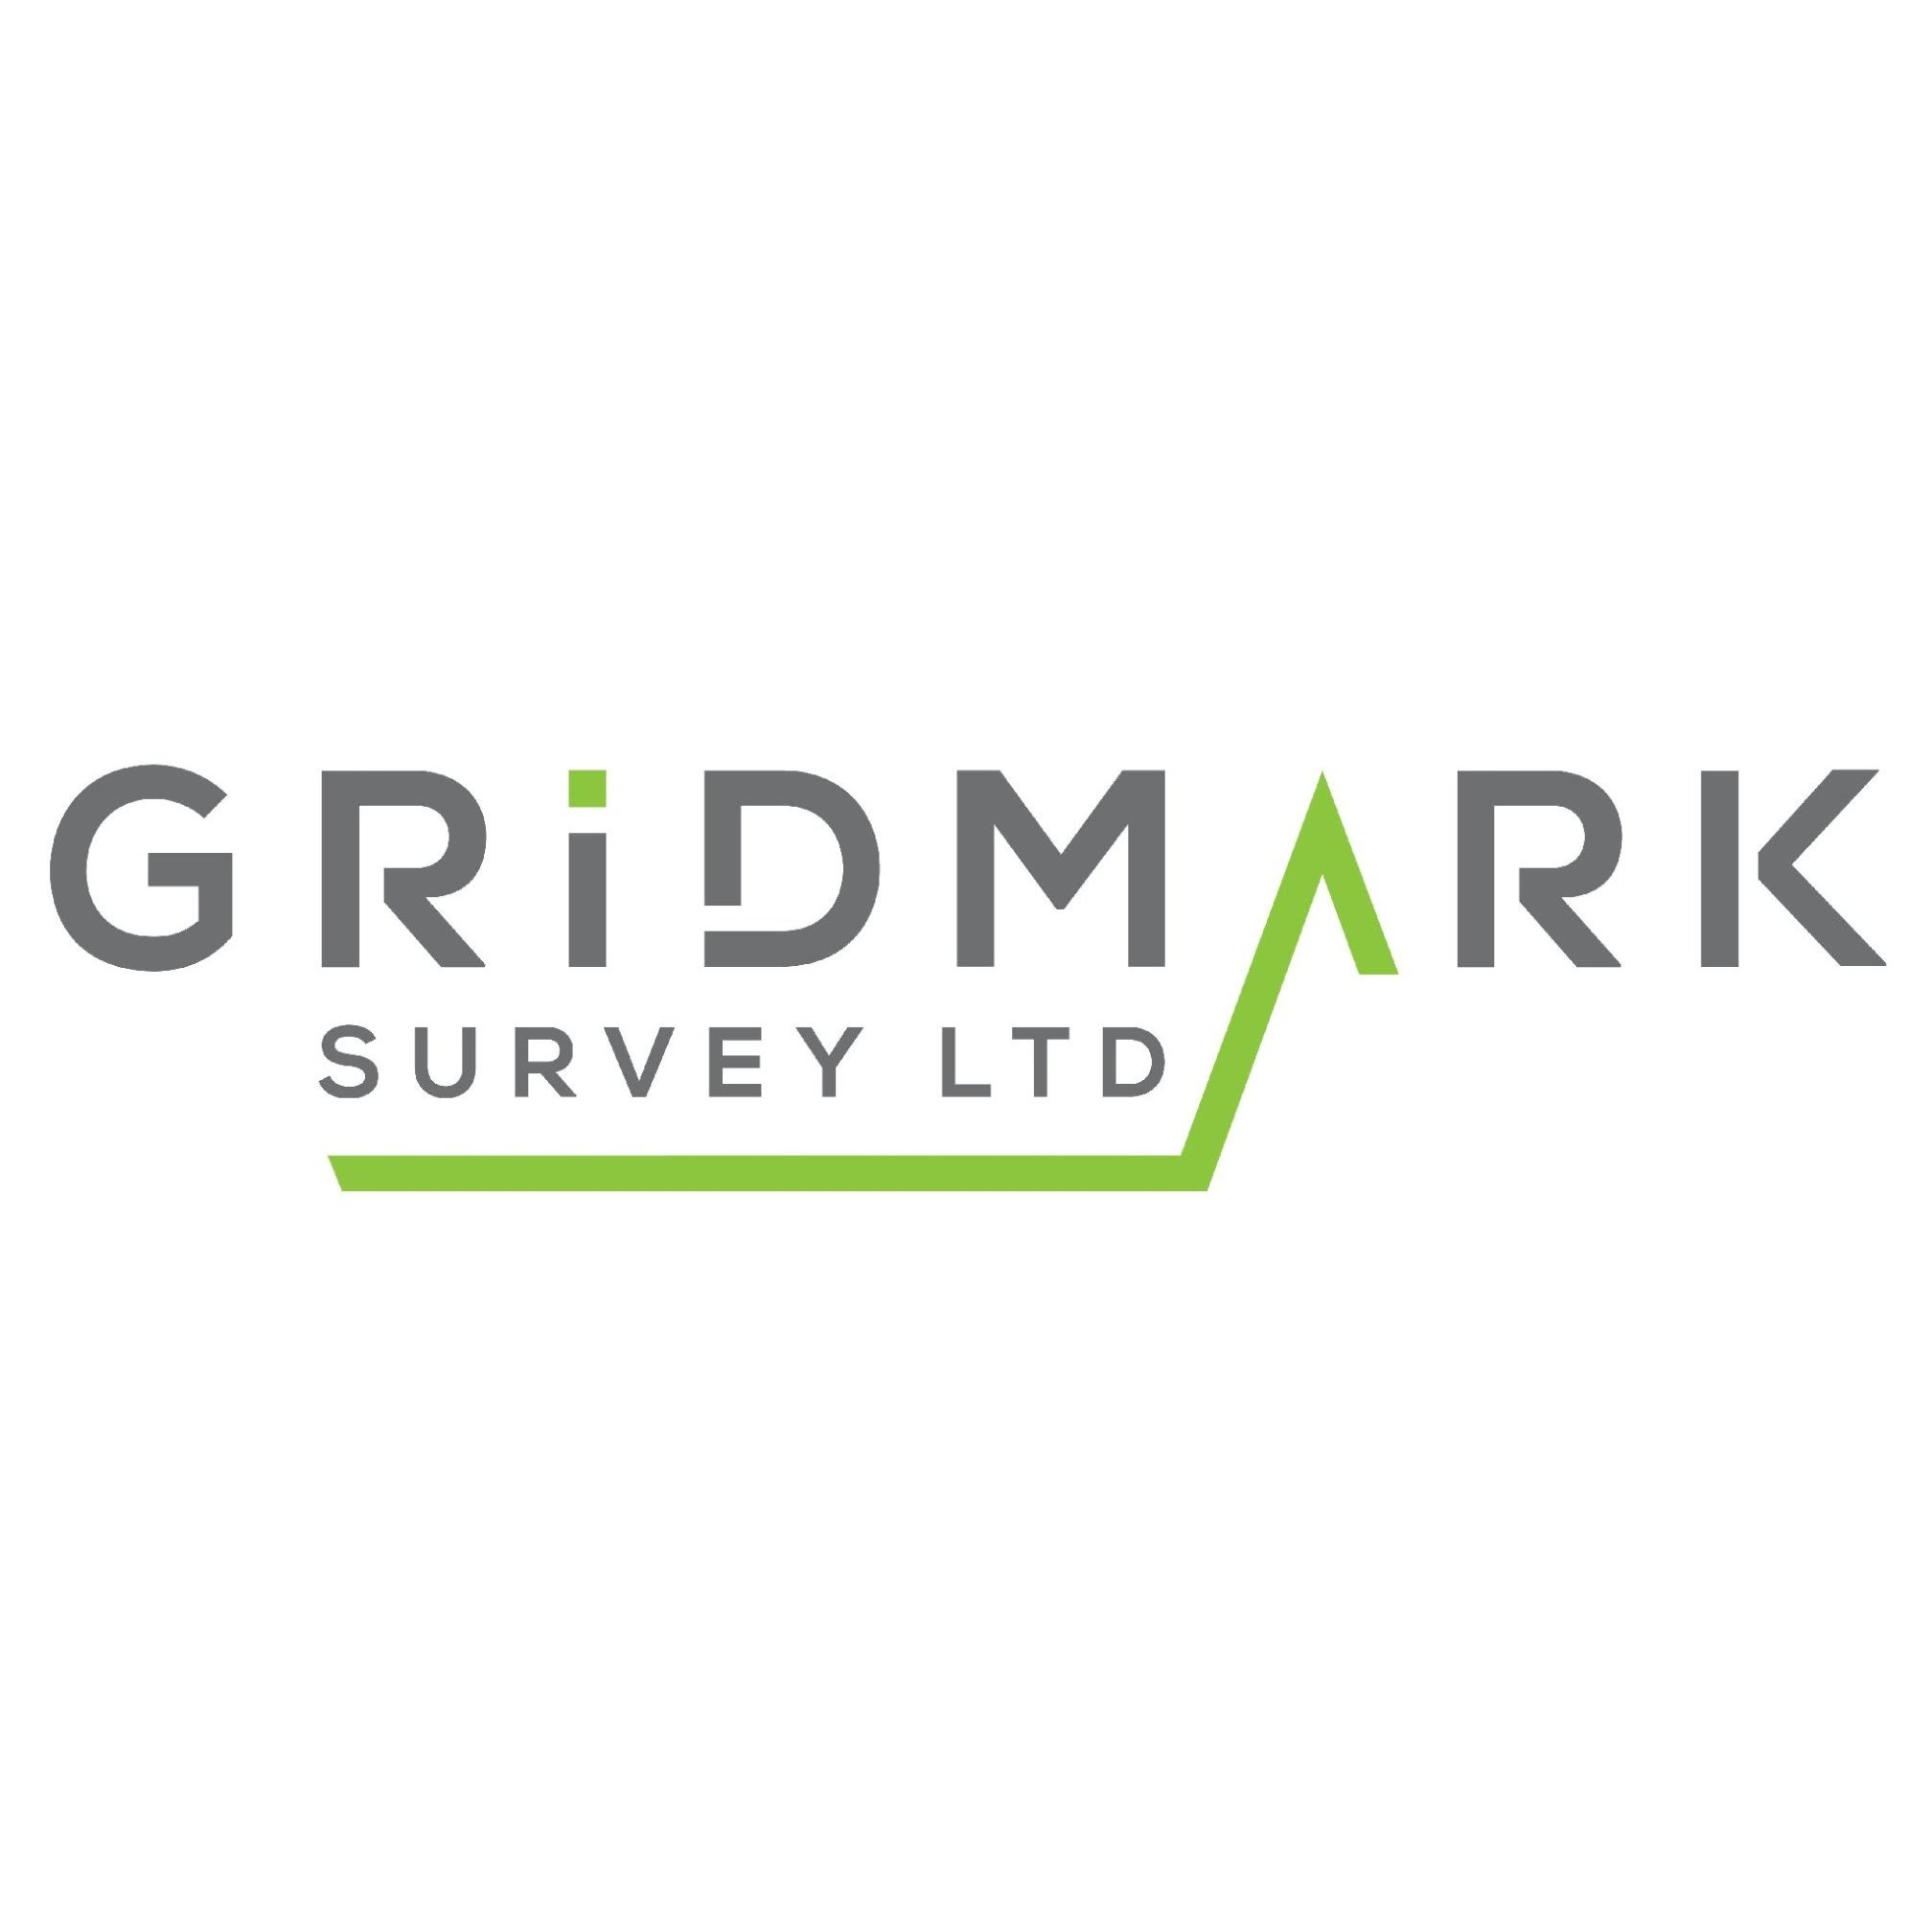 Gridmark Survey Ltd